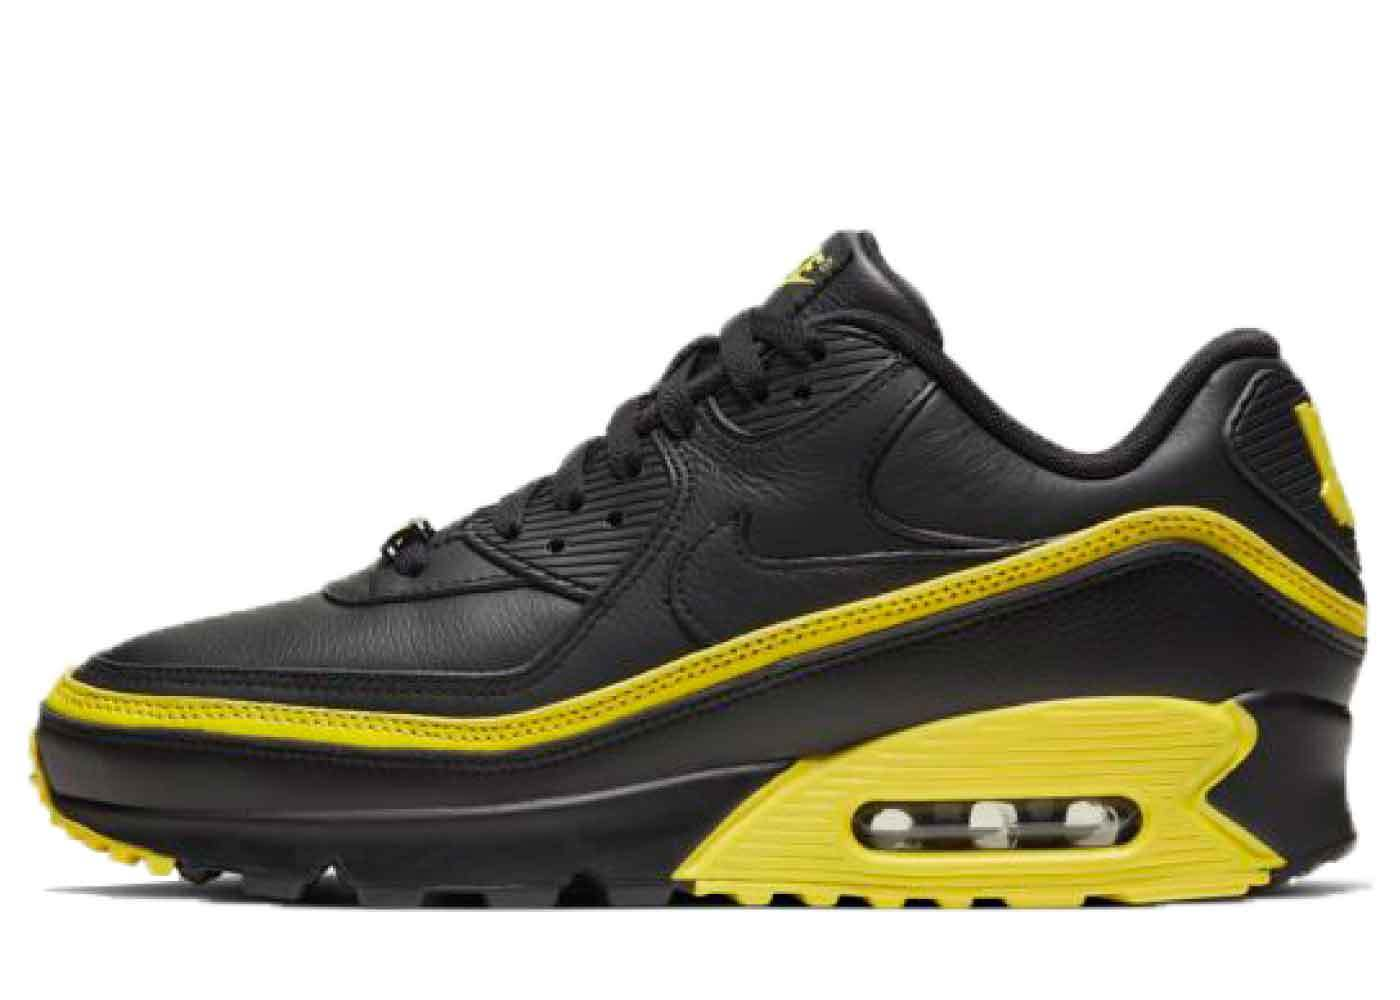 Nike Air Max 90 Undefeated Black Optic Yellowの写真